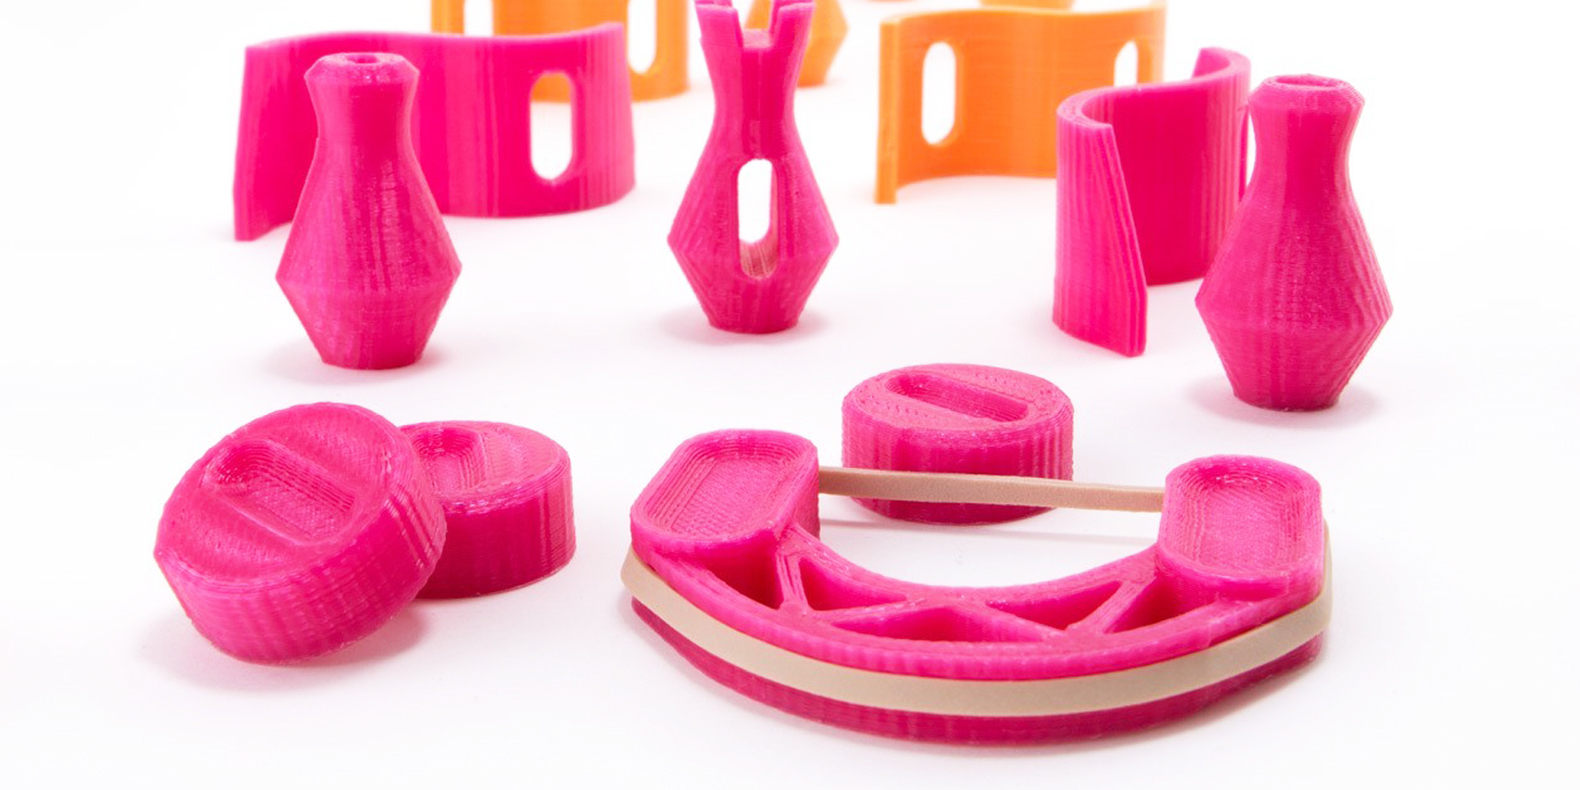 Discover in this new collection of 3D models using smartly rubber bands